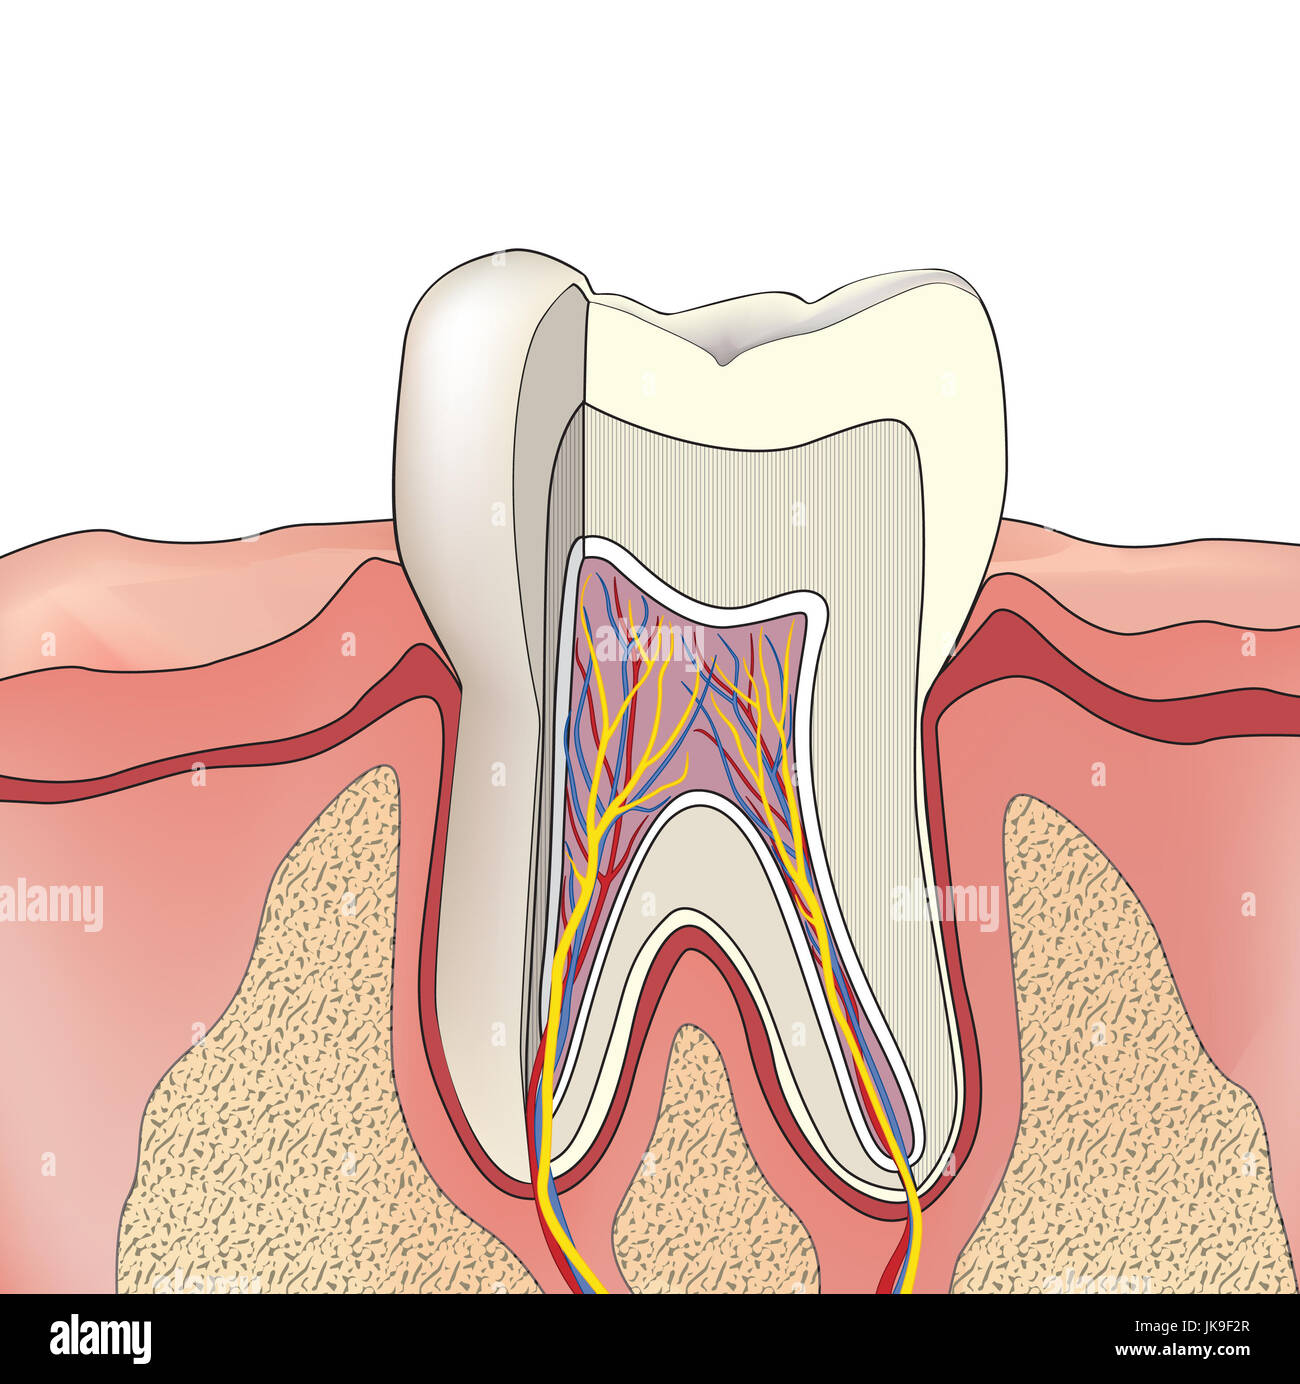 Tooth structure. Anatomy of teeth. Dental medical illustration Stock ...